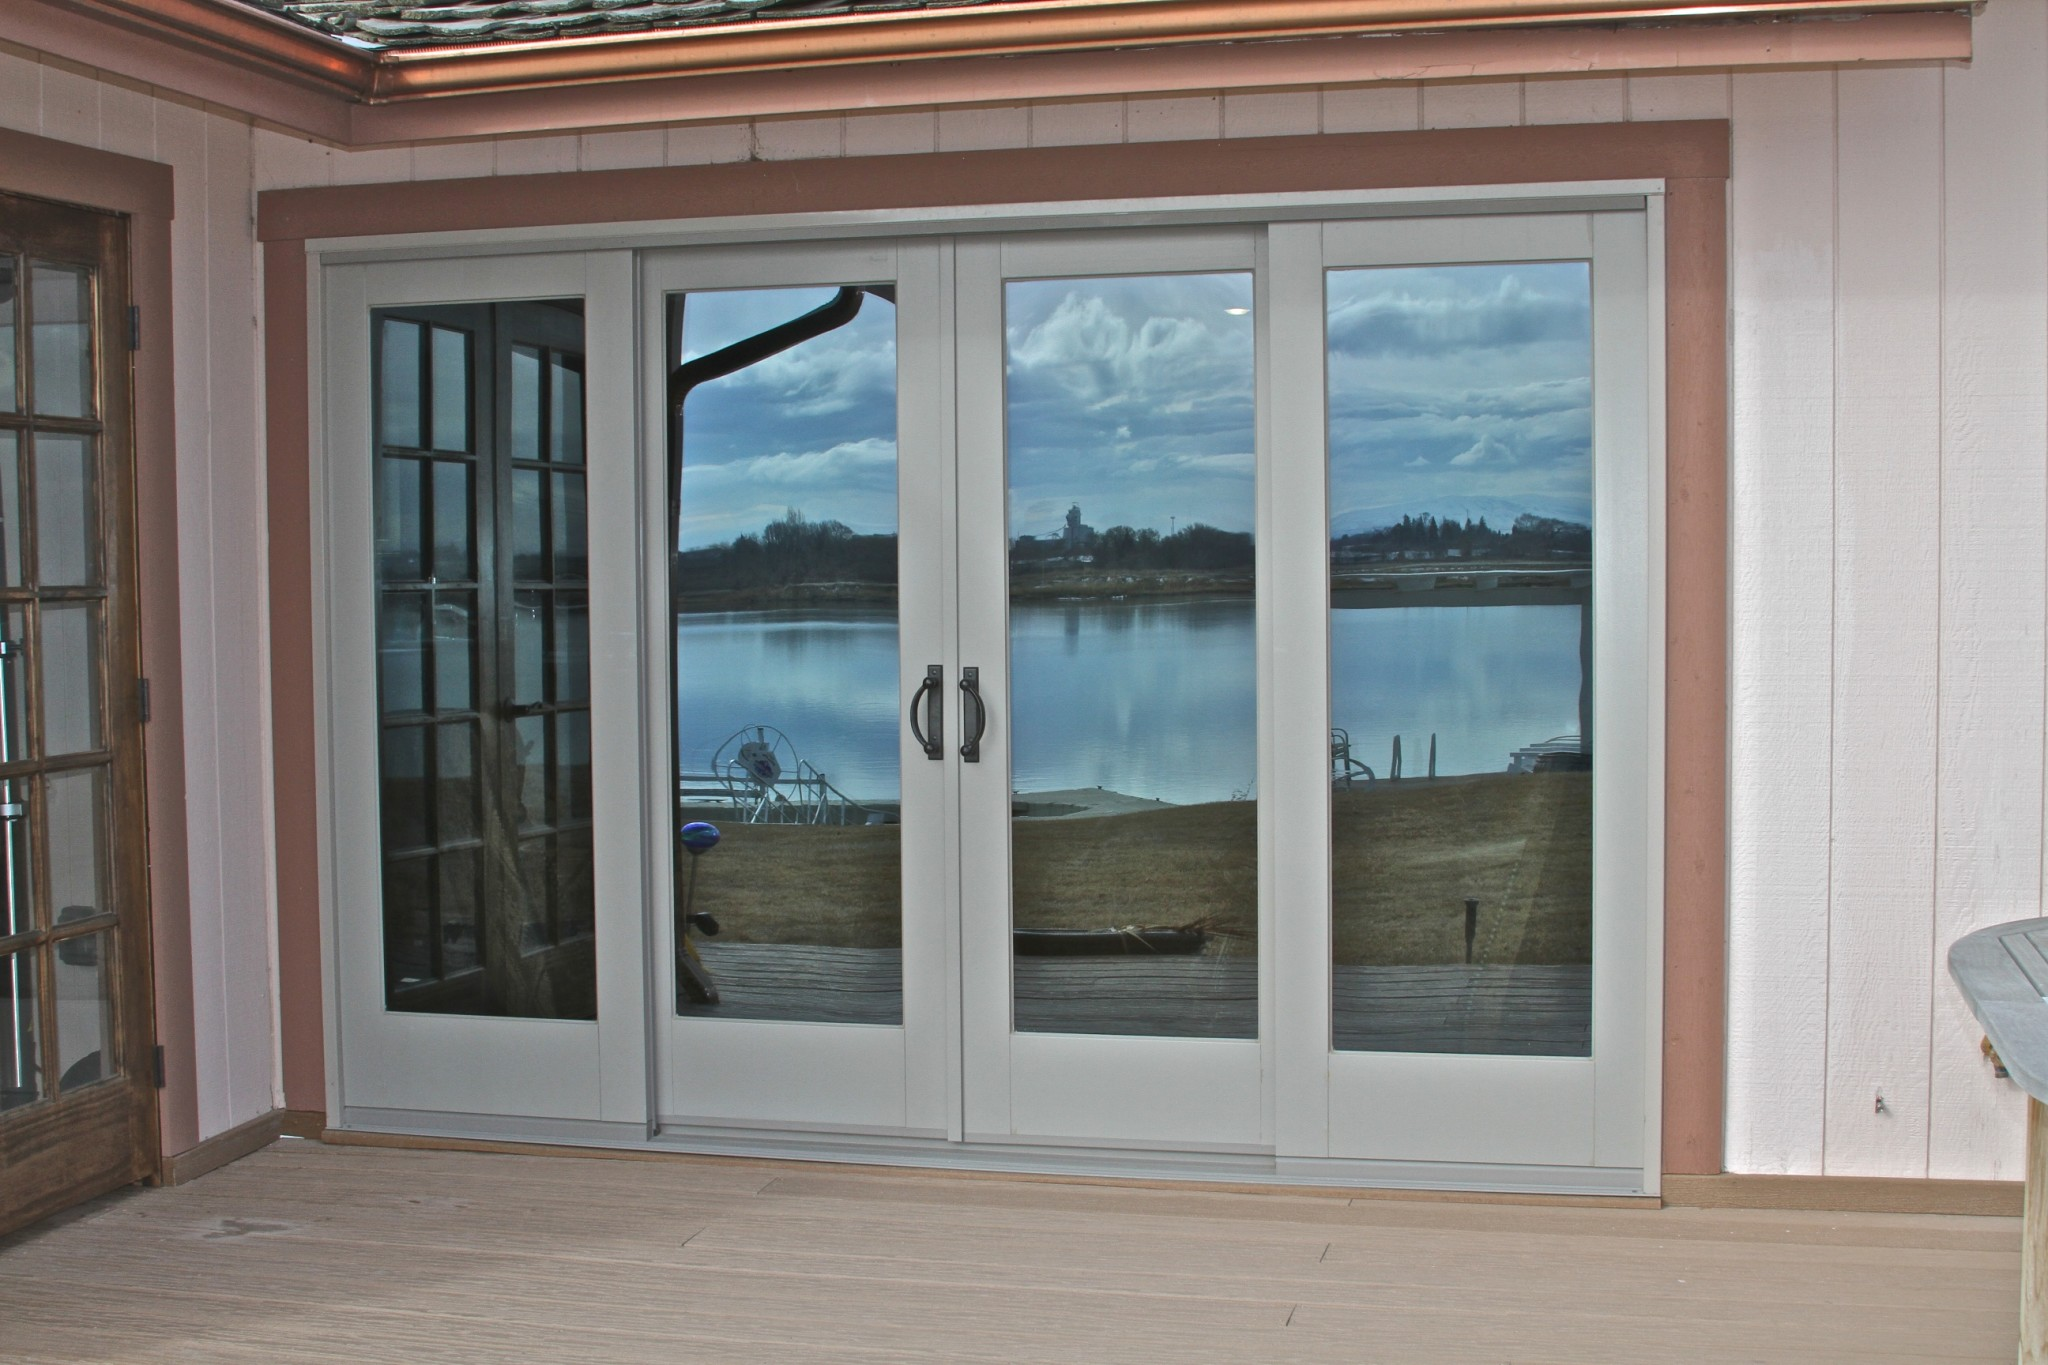 Windows jmarvinhandyman for Patio doors with windows that open